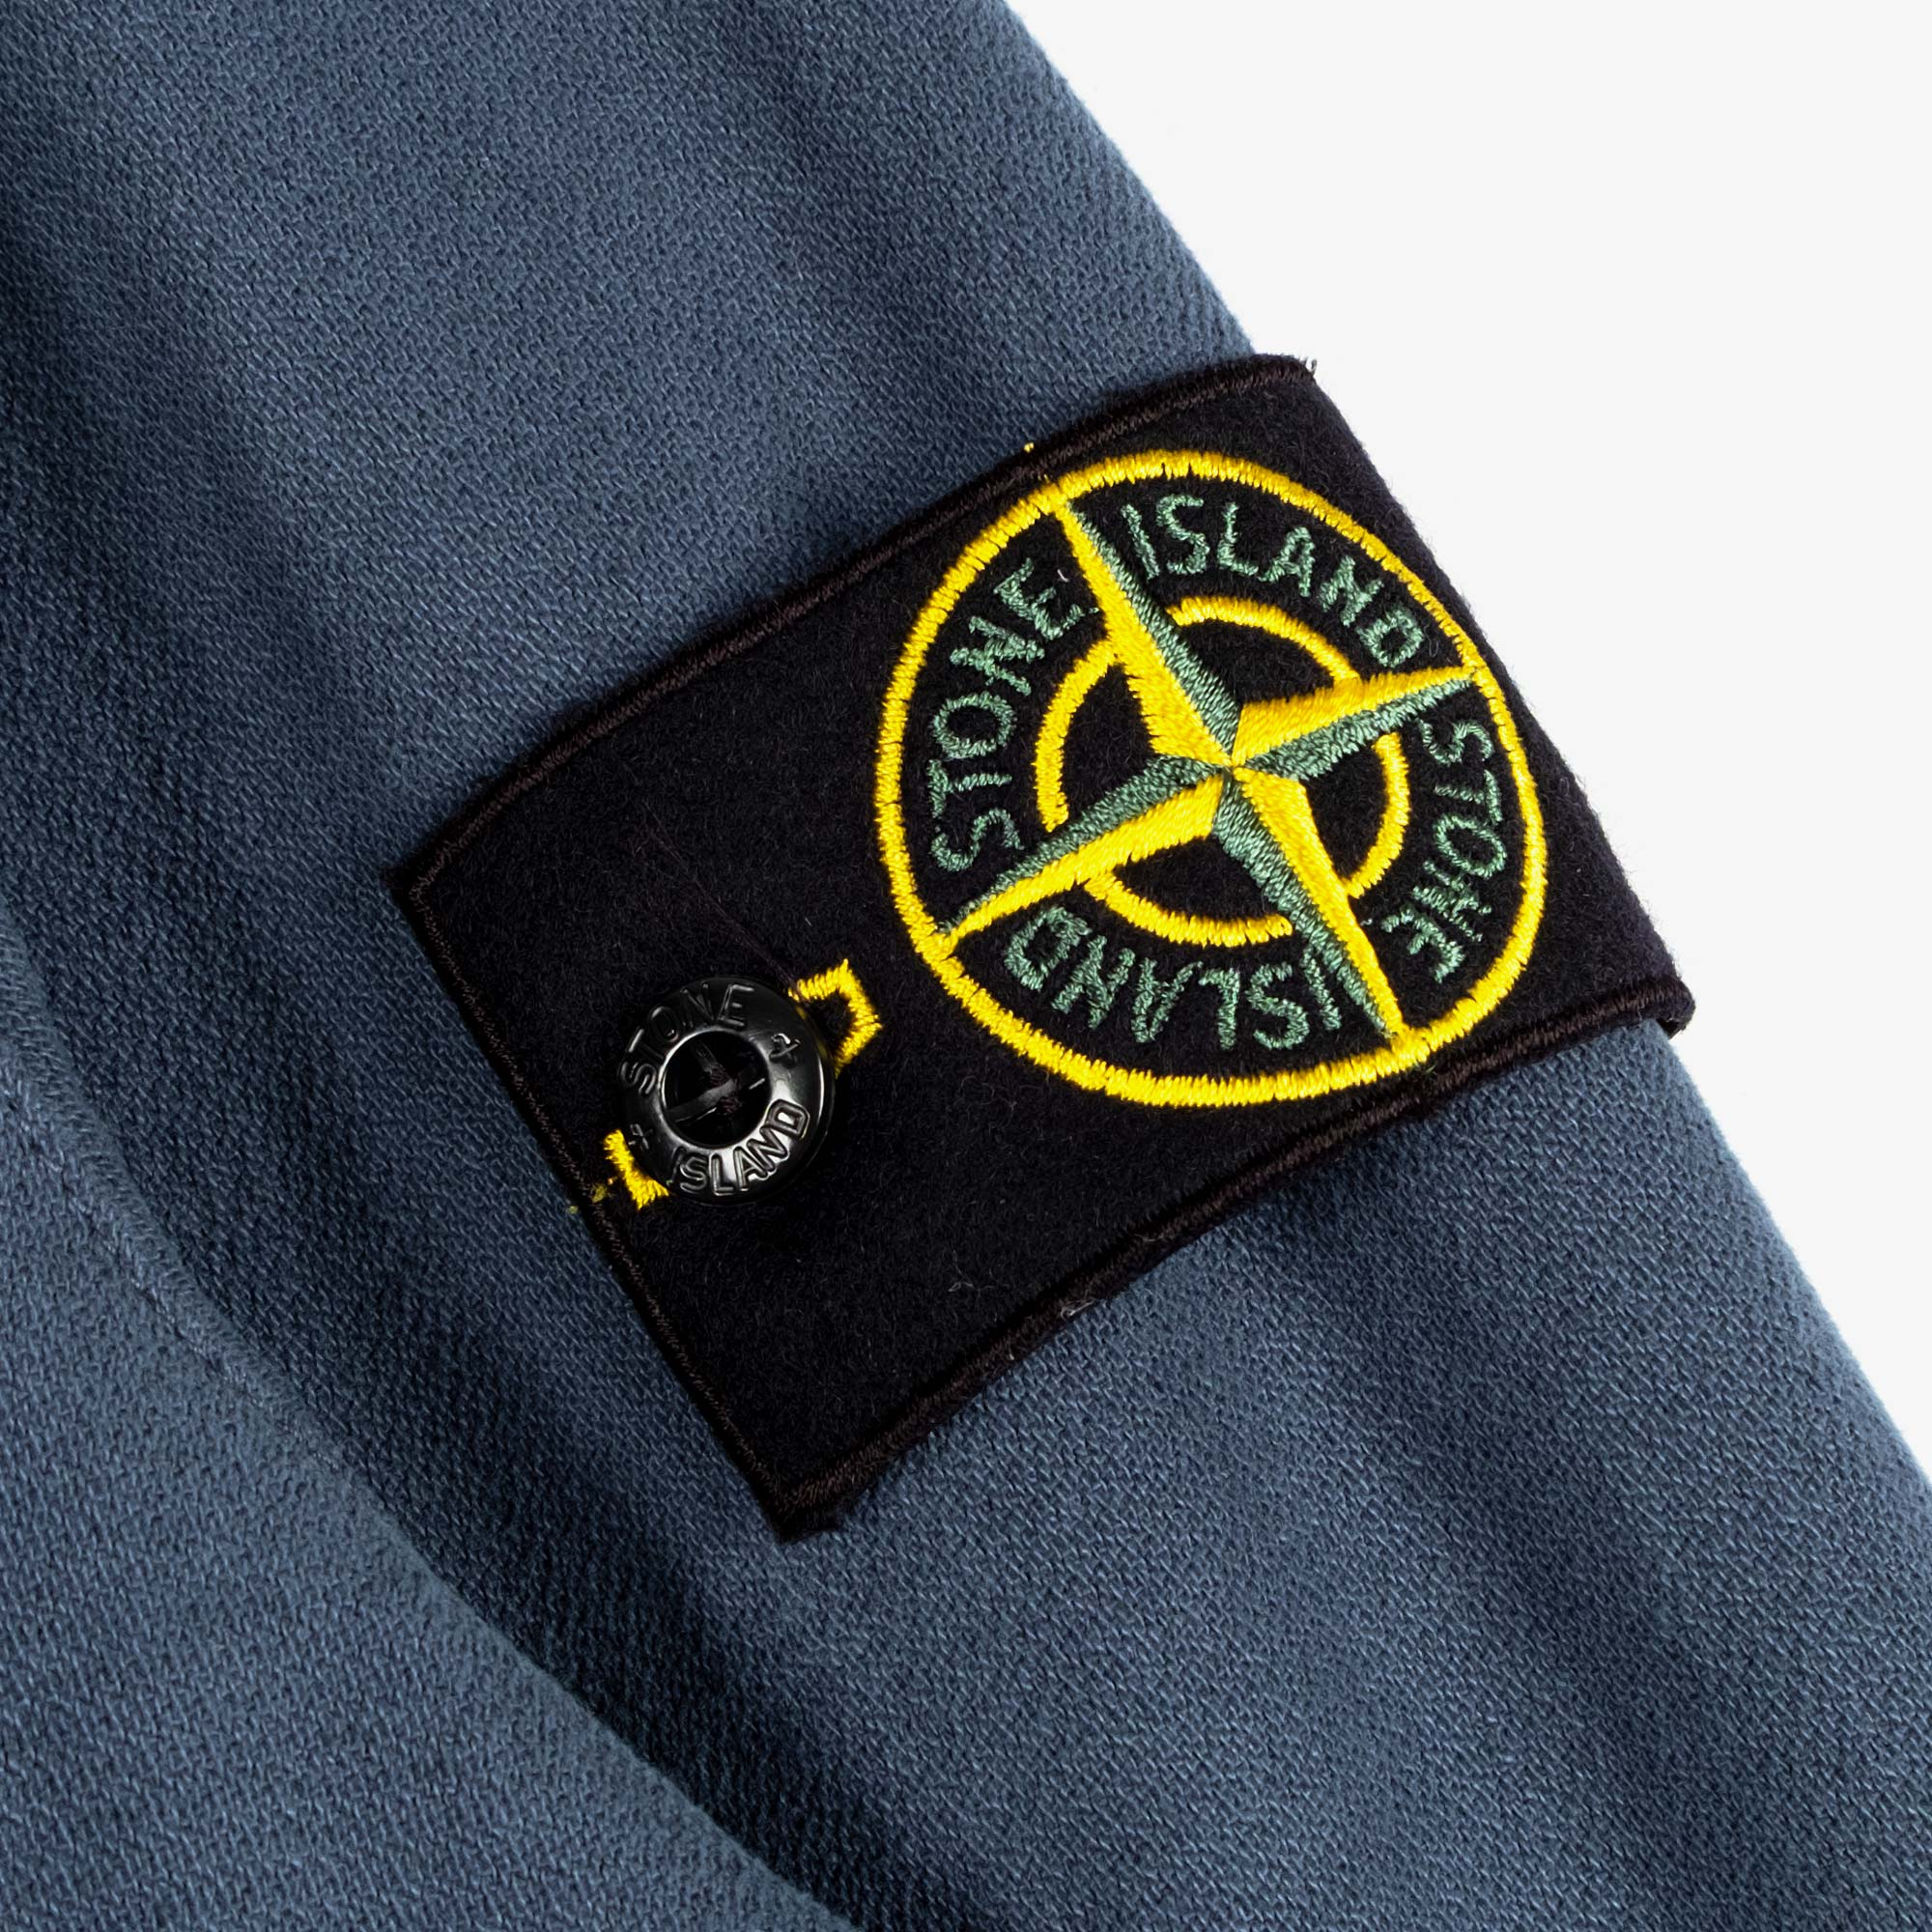 Stone Island Textured Brushed Recycled Cotton Overshirt 10704 - Cobalt Blue 4